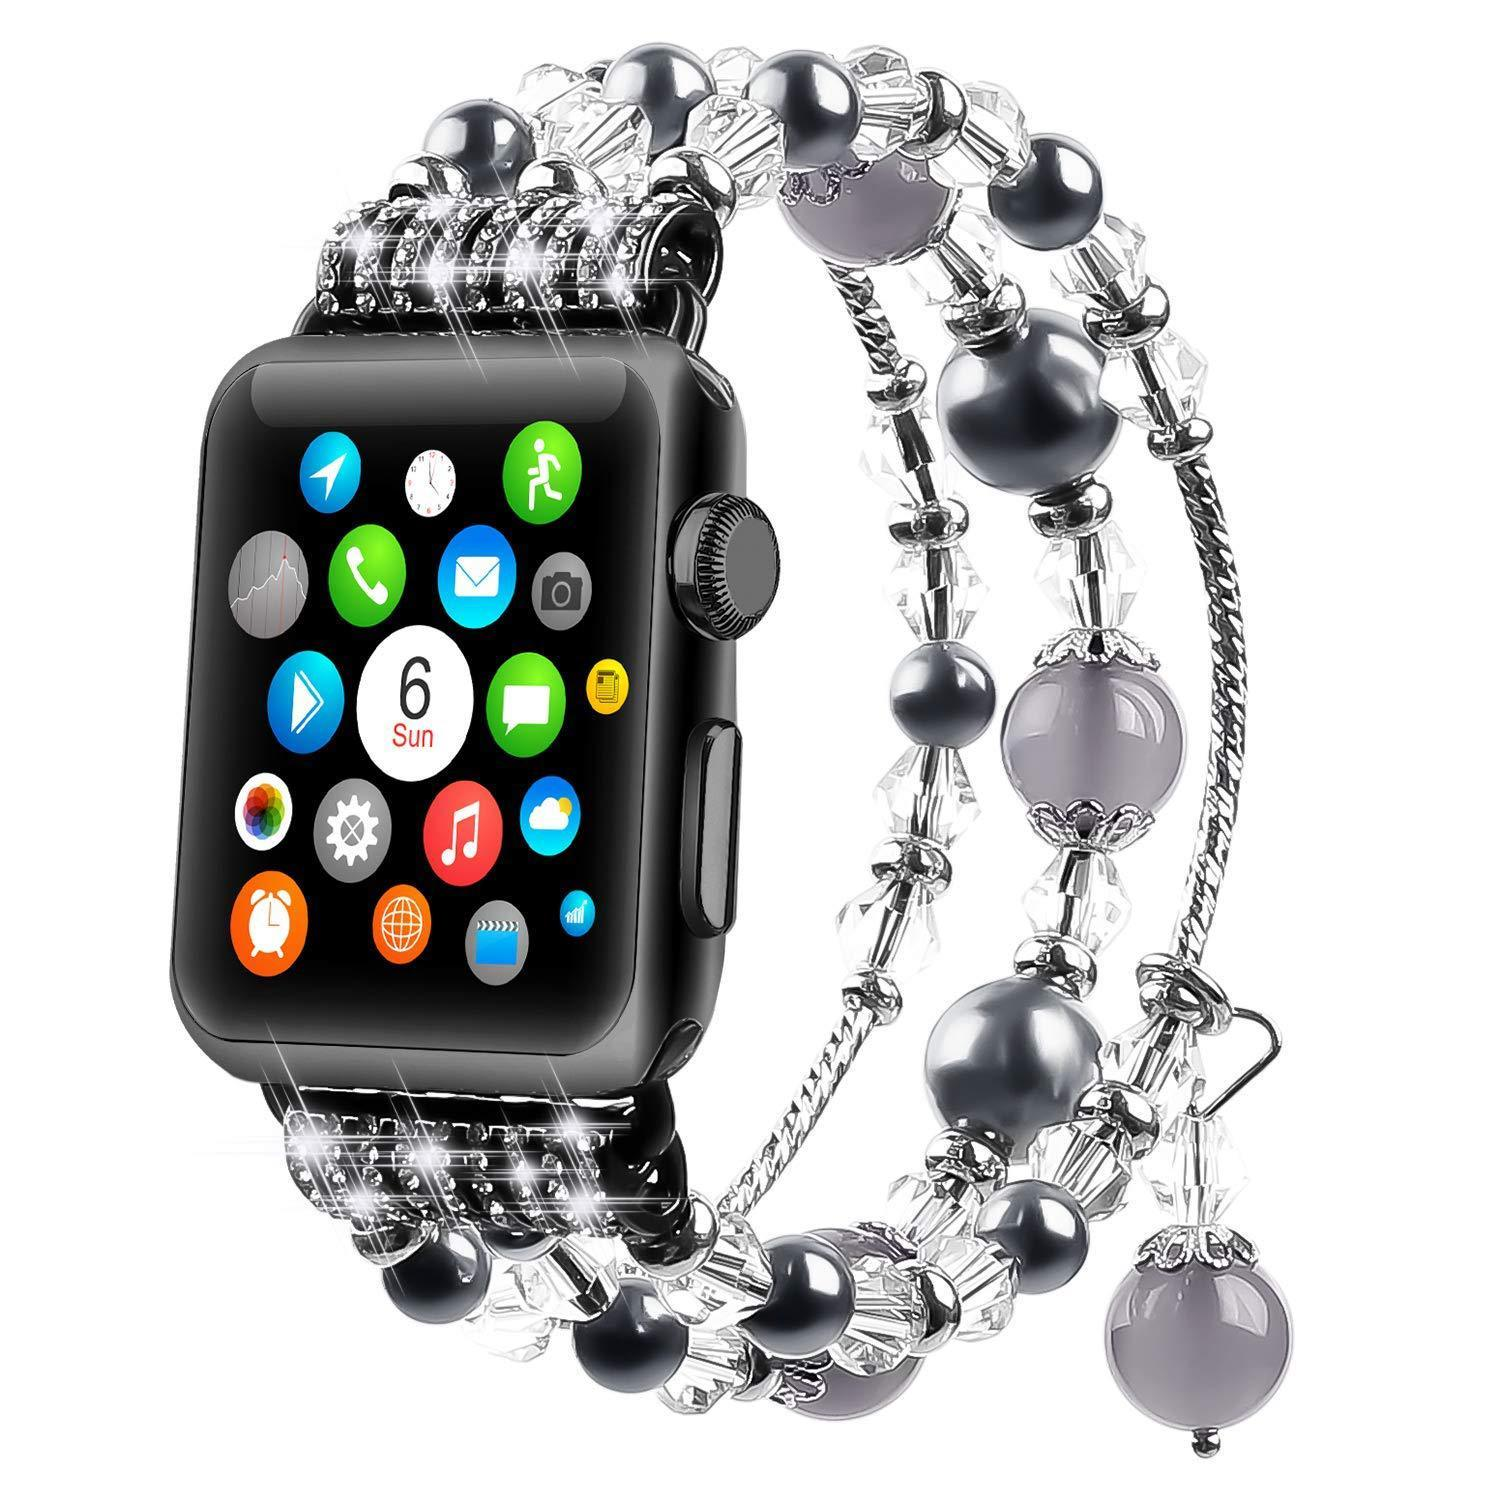 Apple Watch Agate Crystal Strap(ONLY $24.99 The Last Day)